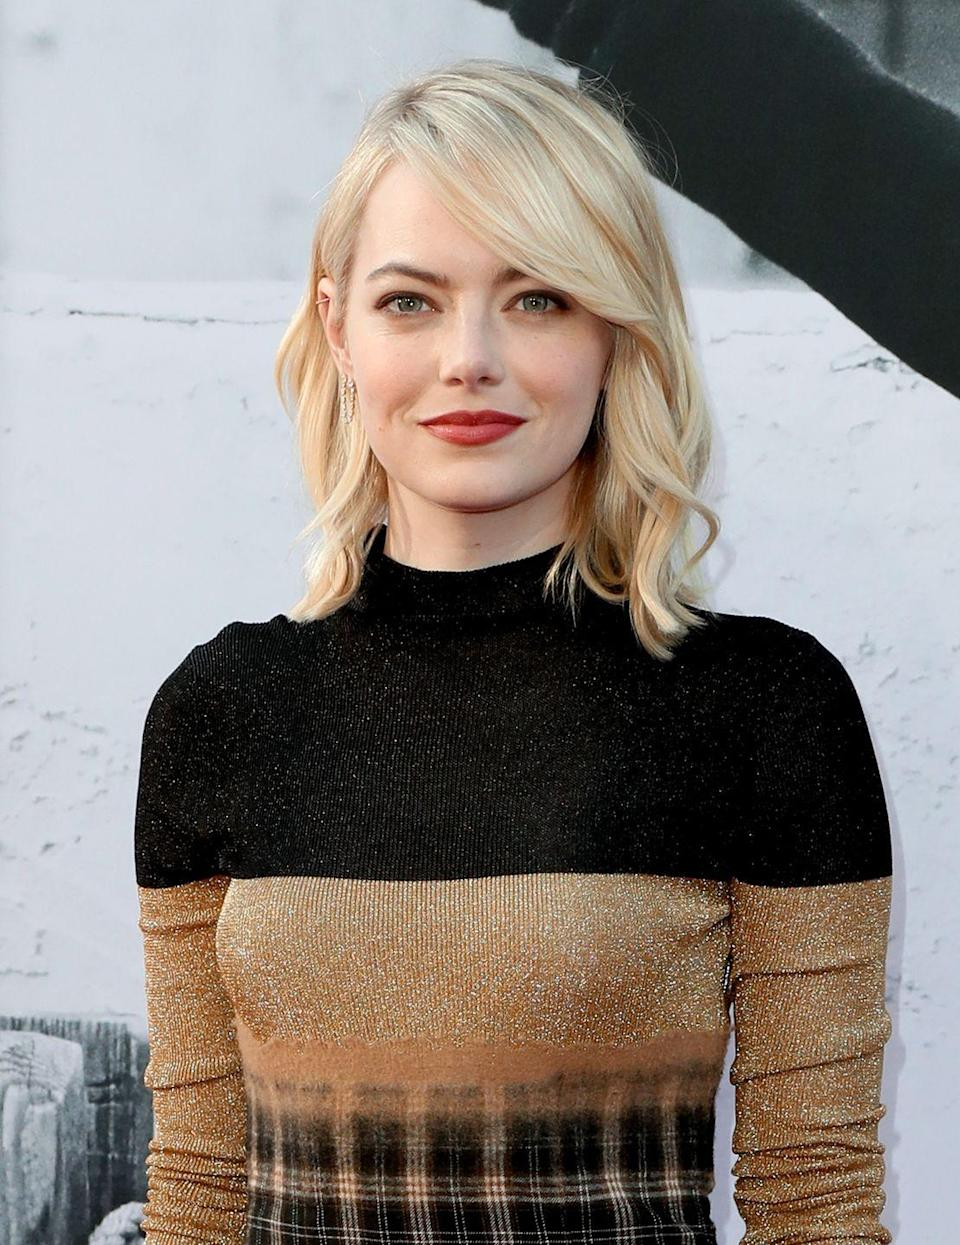 "<p>""The first time I had a panic attack I was sitting in my friend's house, and I thought the house was burning down. I called my mom and she brought me home, and for the next three years it just would not stop,"" Emma Stone told the <a href=""https://www.wsj.com/articles/emma-stone-talks-irrational-man-the-sony-hack-and-keeping-her-personal-life-private-1434547660"" rel=""nofollow noopener"" target=""_blank"" data-ylk=""slk:Wall Street Journal."" class=""link rapid-noclick-resp"">Wall Street Journal.</a><br>""I would ask my mom to tell me exactly how the day was going to be, then ask again 30 seconds later. I just needed to know that no one was going to die and nothing was going to change.""</p>"